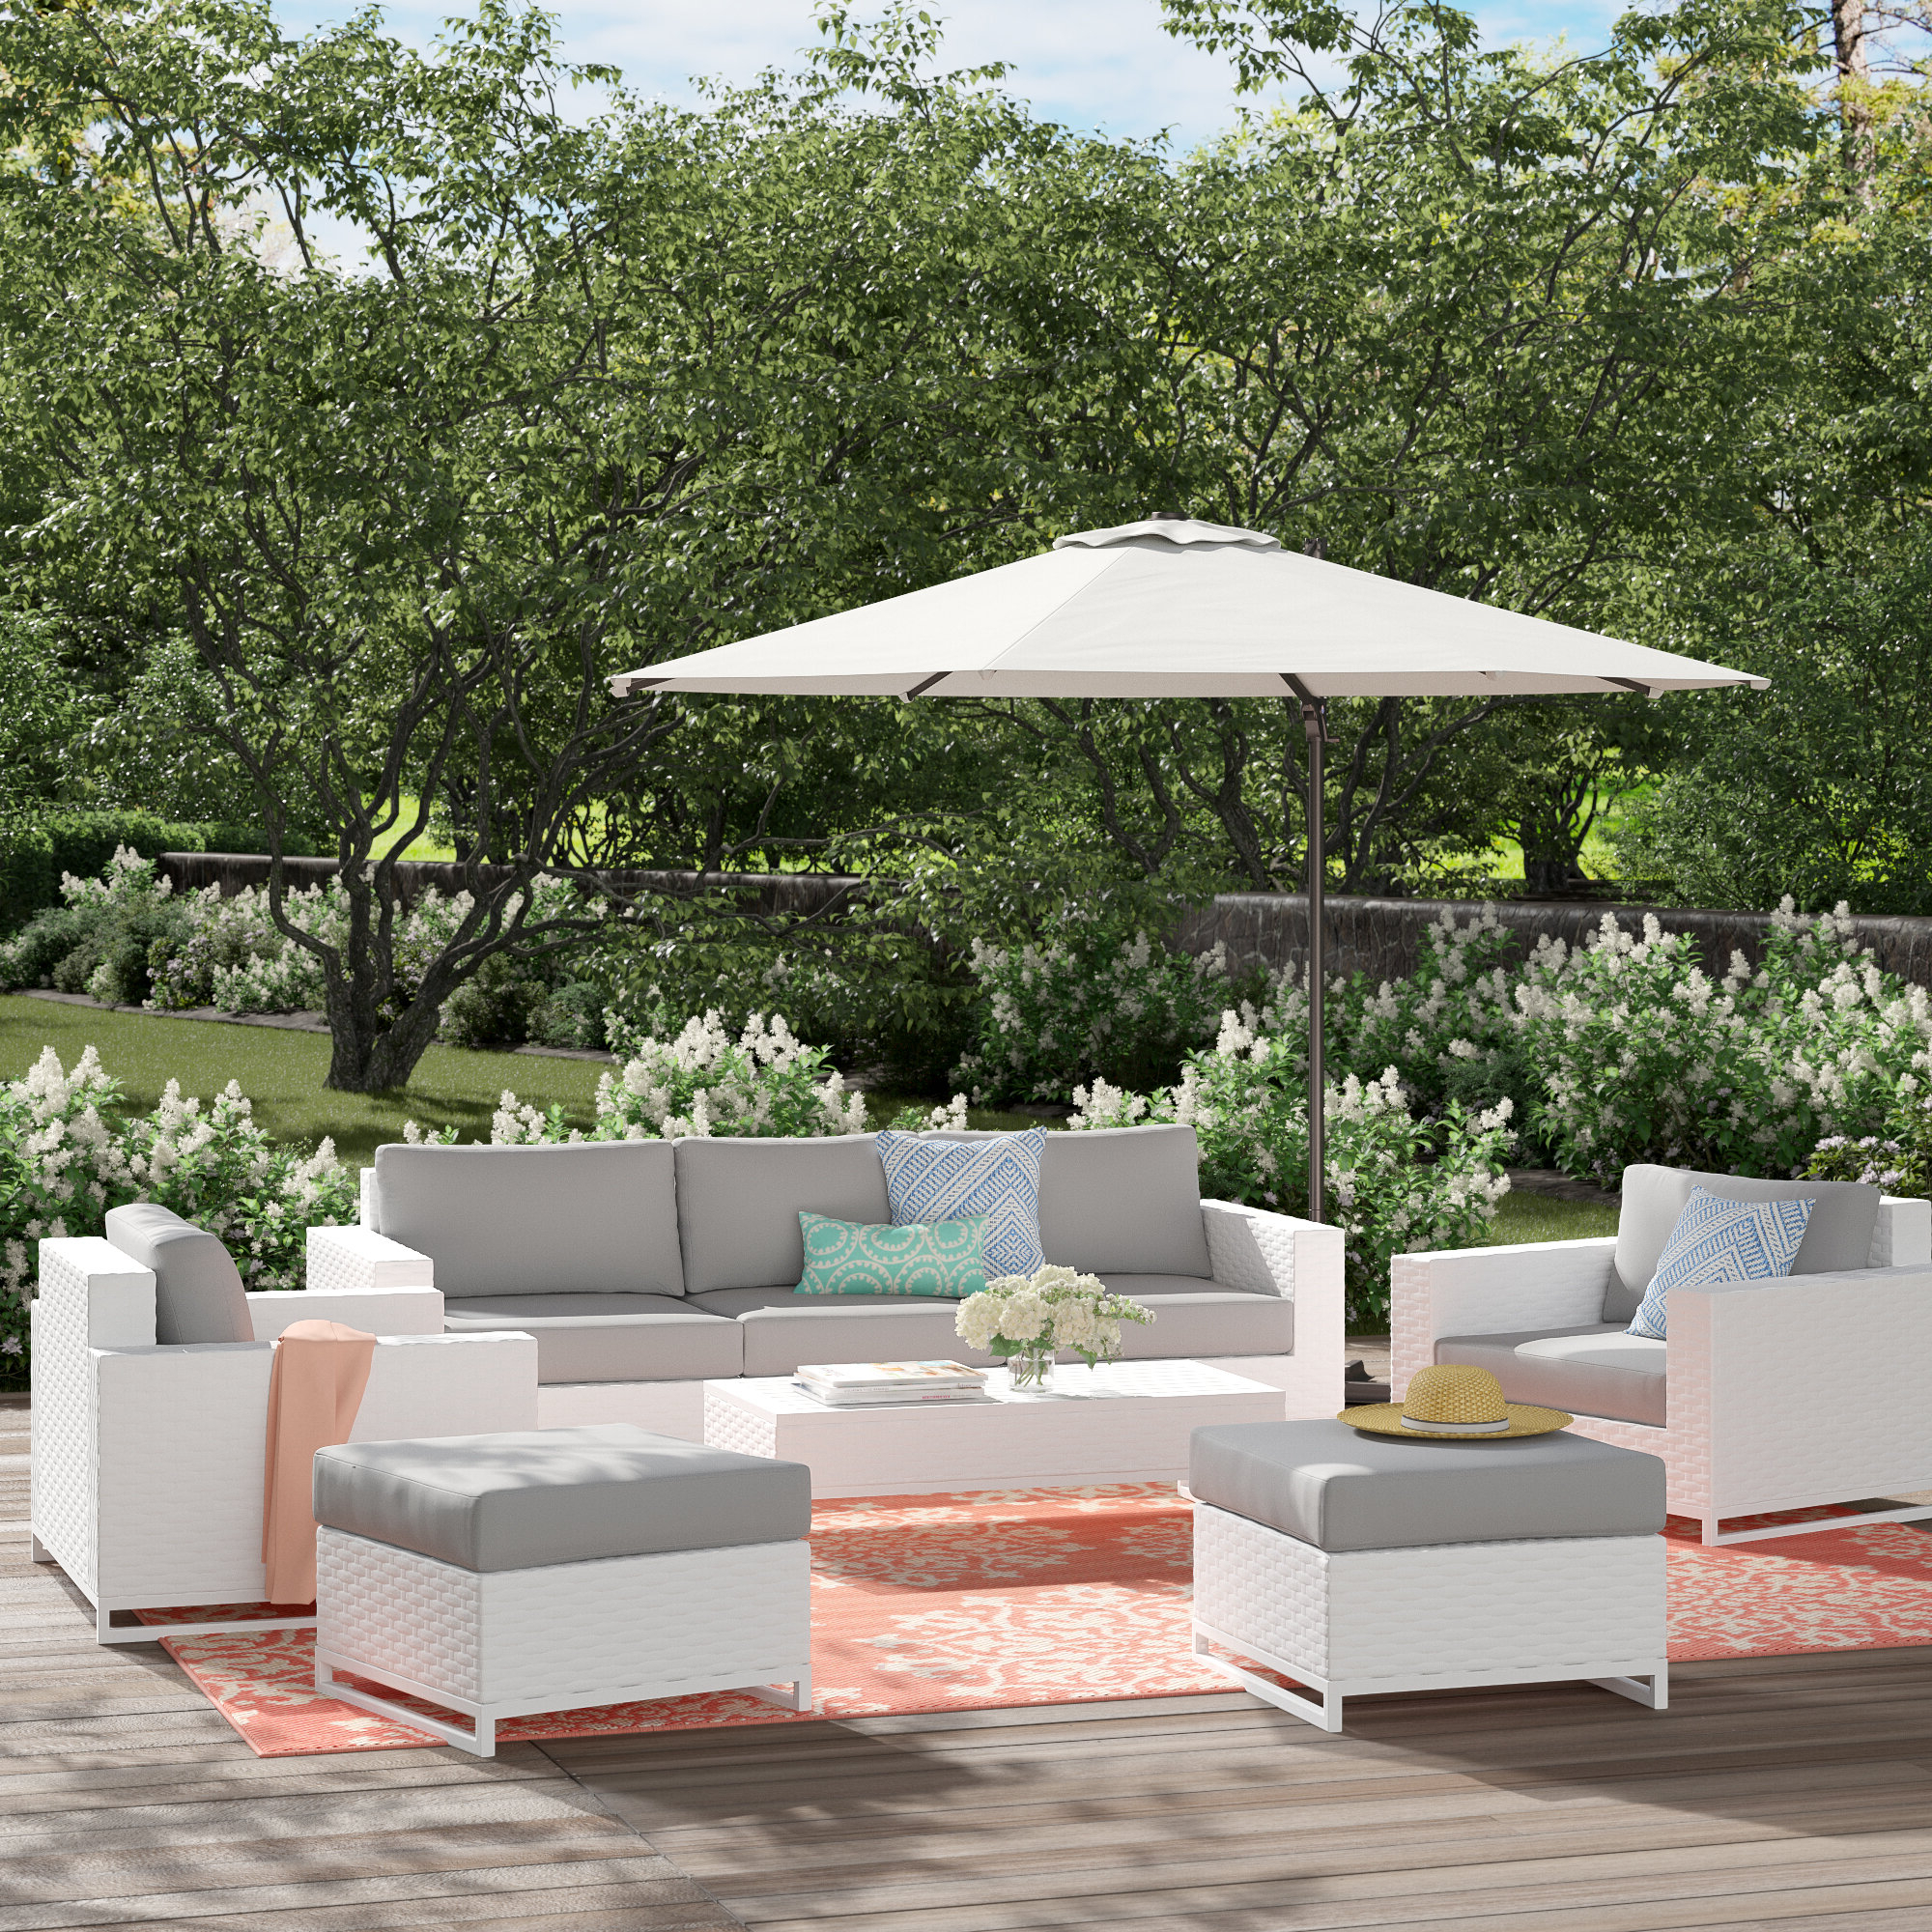 Menifee Patio Sofas With Cushions Within Popular Menifee 8 Piece Rattan Multiple Chairs Seating Group With Cushions (View 9 of 25)